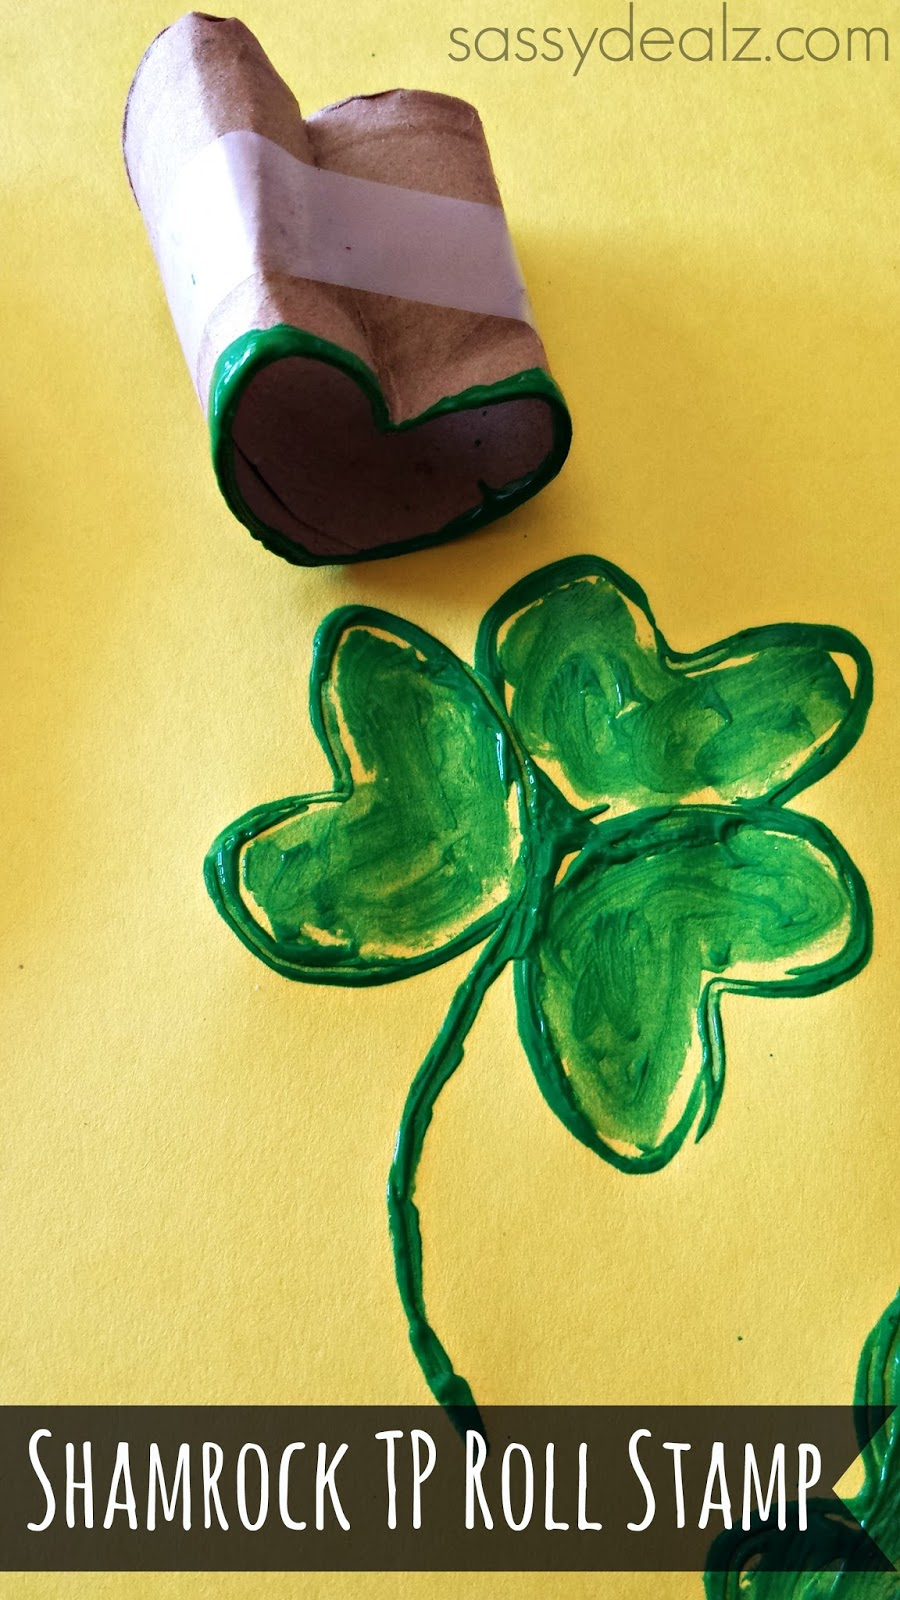 http://www.sassydealz.com/2014/01/shamrock-toilet-paper-roll-stamp-st-patricks-day-craft.html